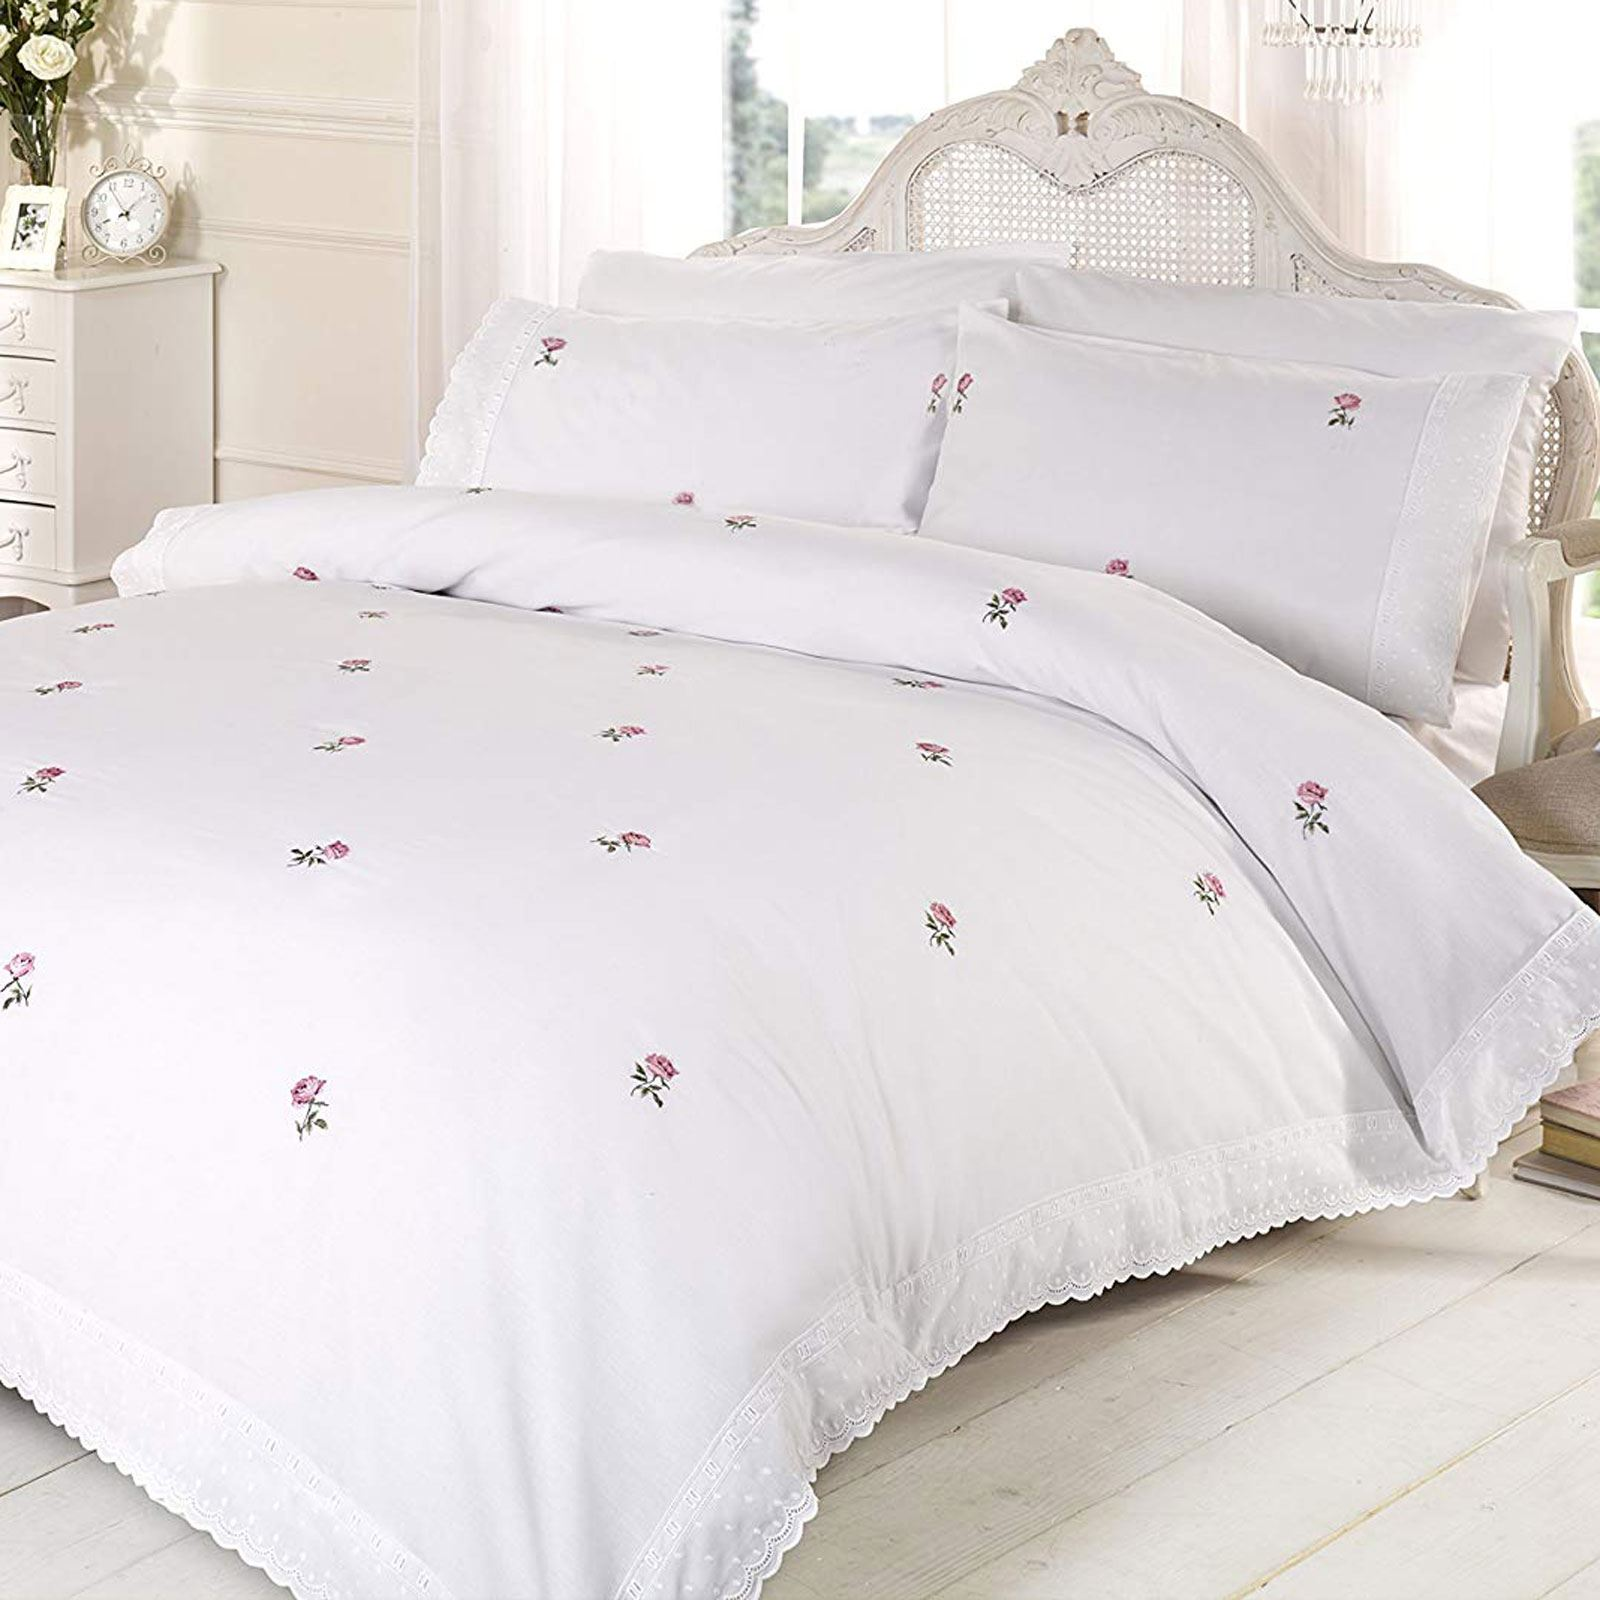 Black Friday Bettwäsche Details About Alicia Floral White Pink Double Duvet Cover Set Embroidered Bedding